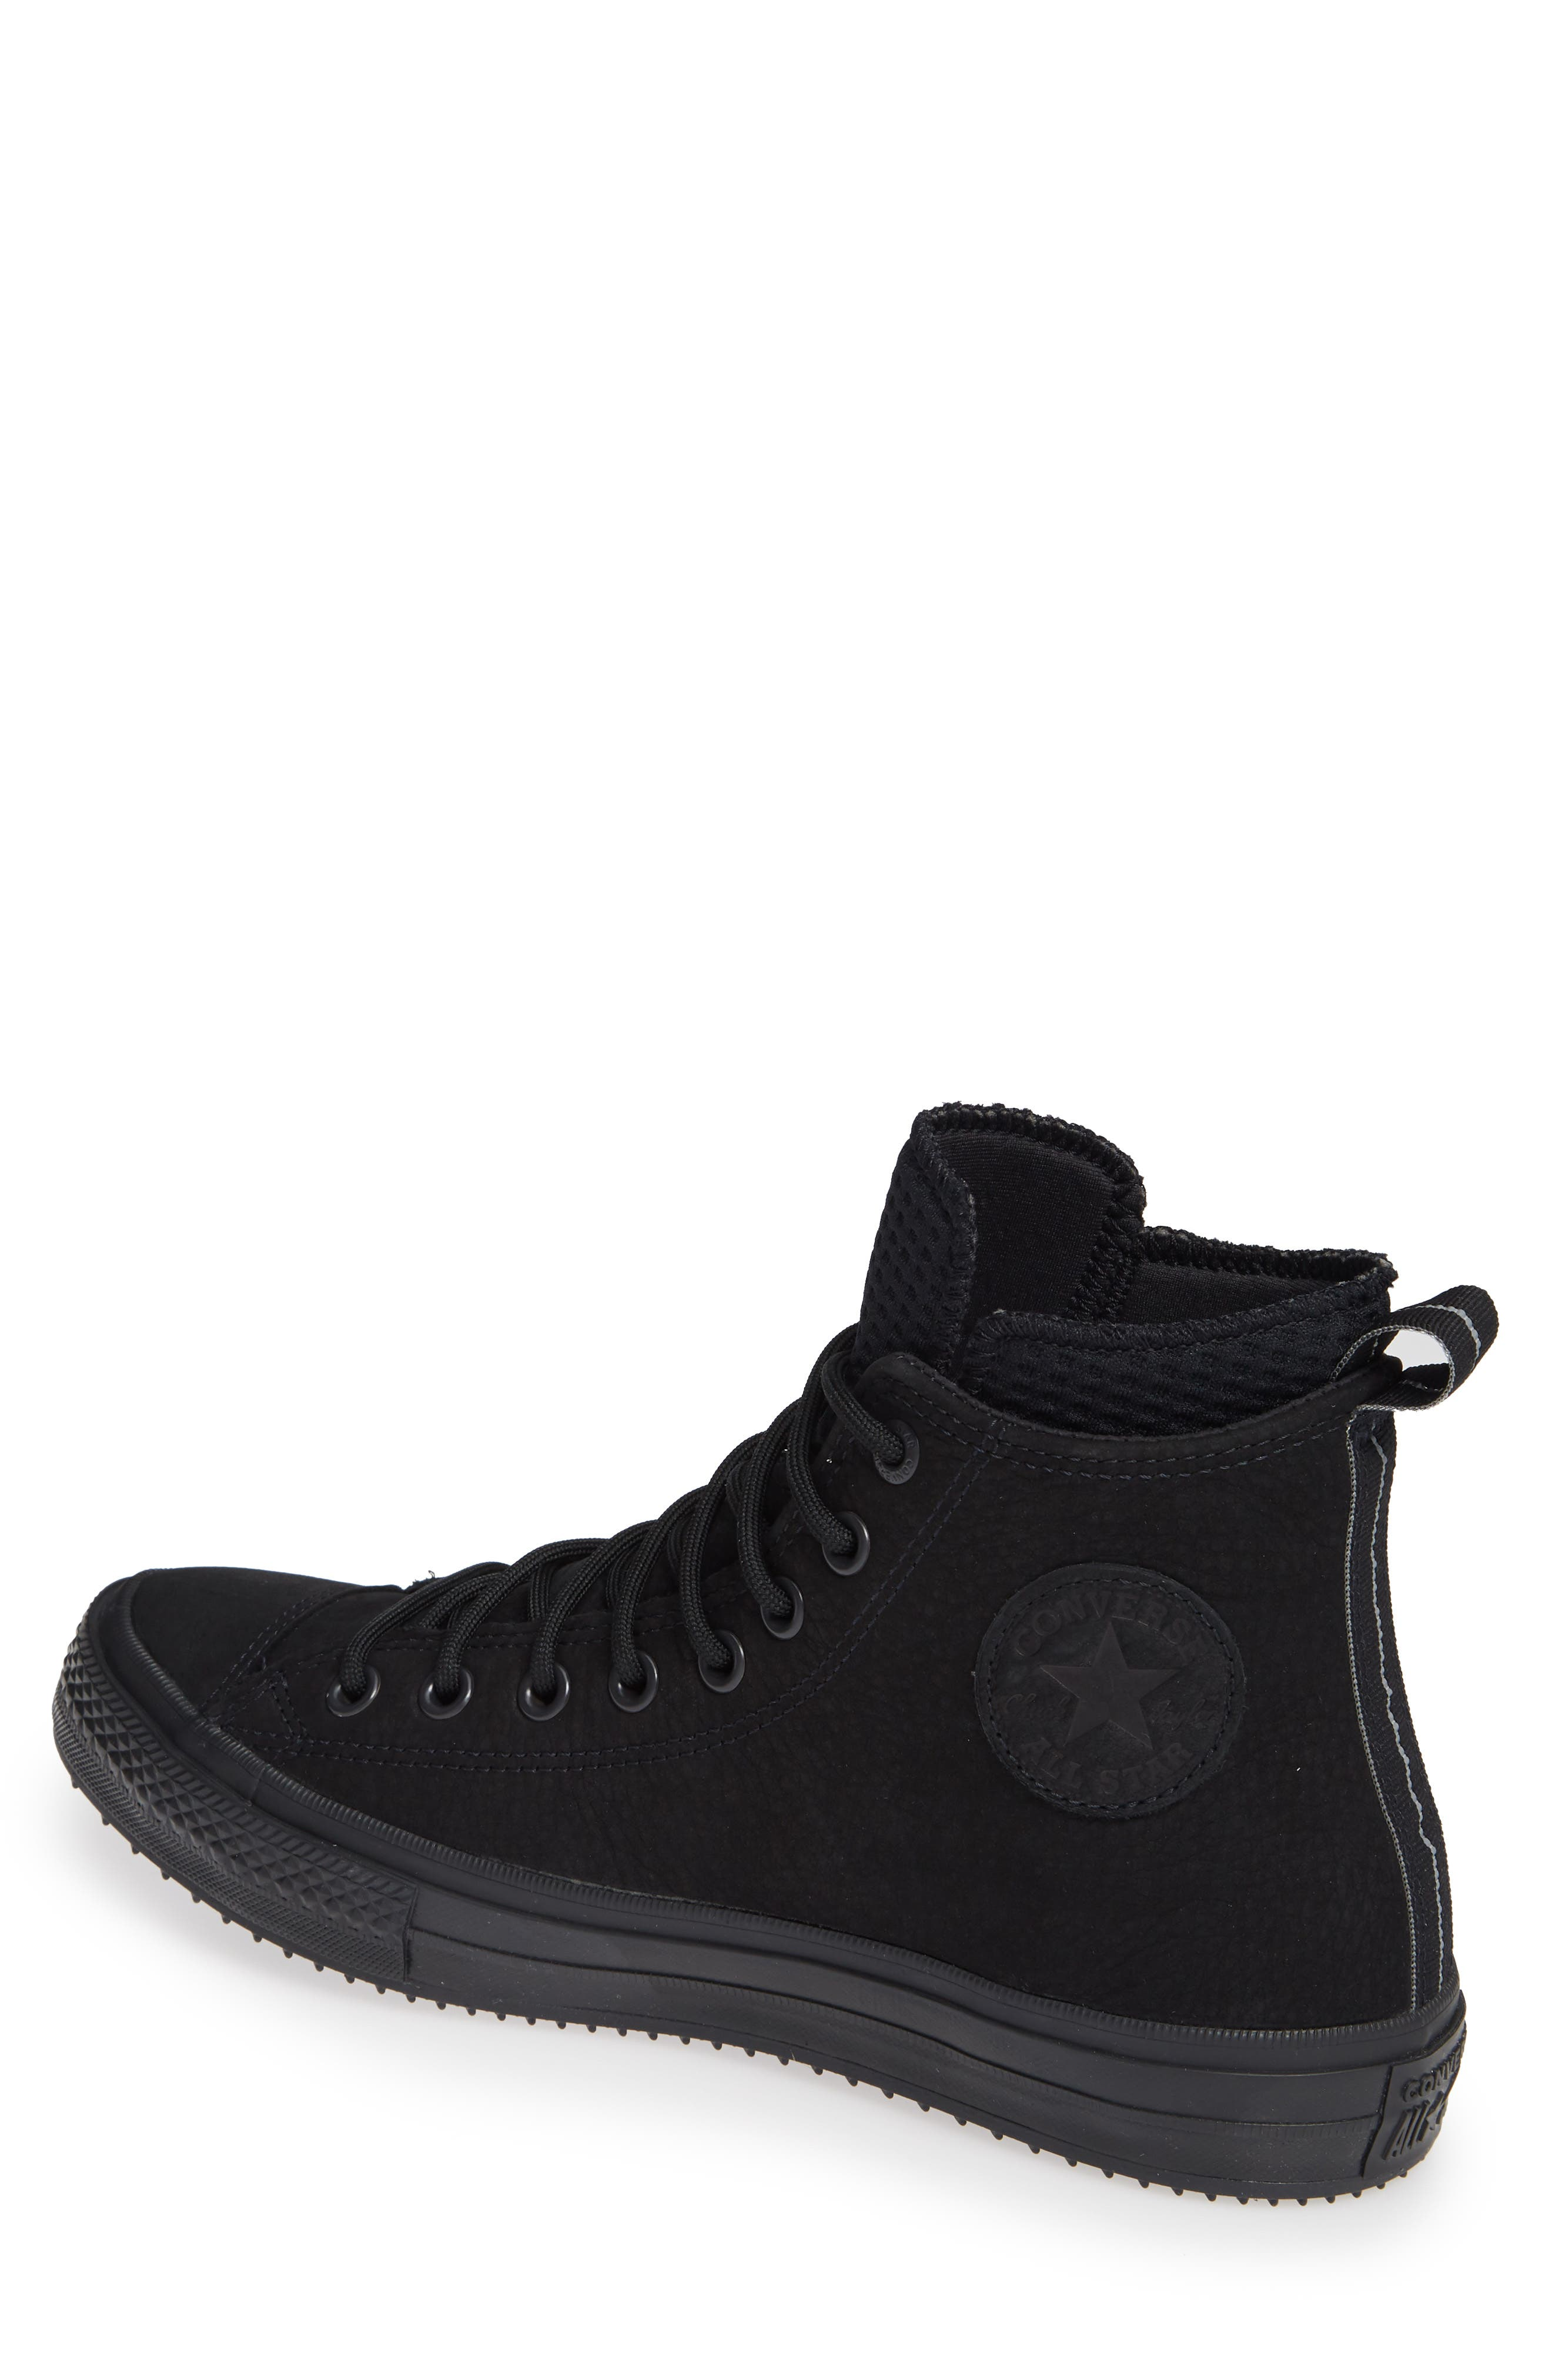 CONVERSE, Chuck Taylor<sup>®</sup> All Star<sup>®</sup> Counter Climate Waterproof Sneaker, Alternate thumbnail 2, color, BLACK/ BLACK/ BLACK